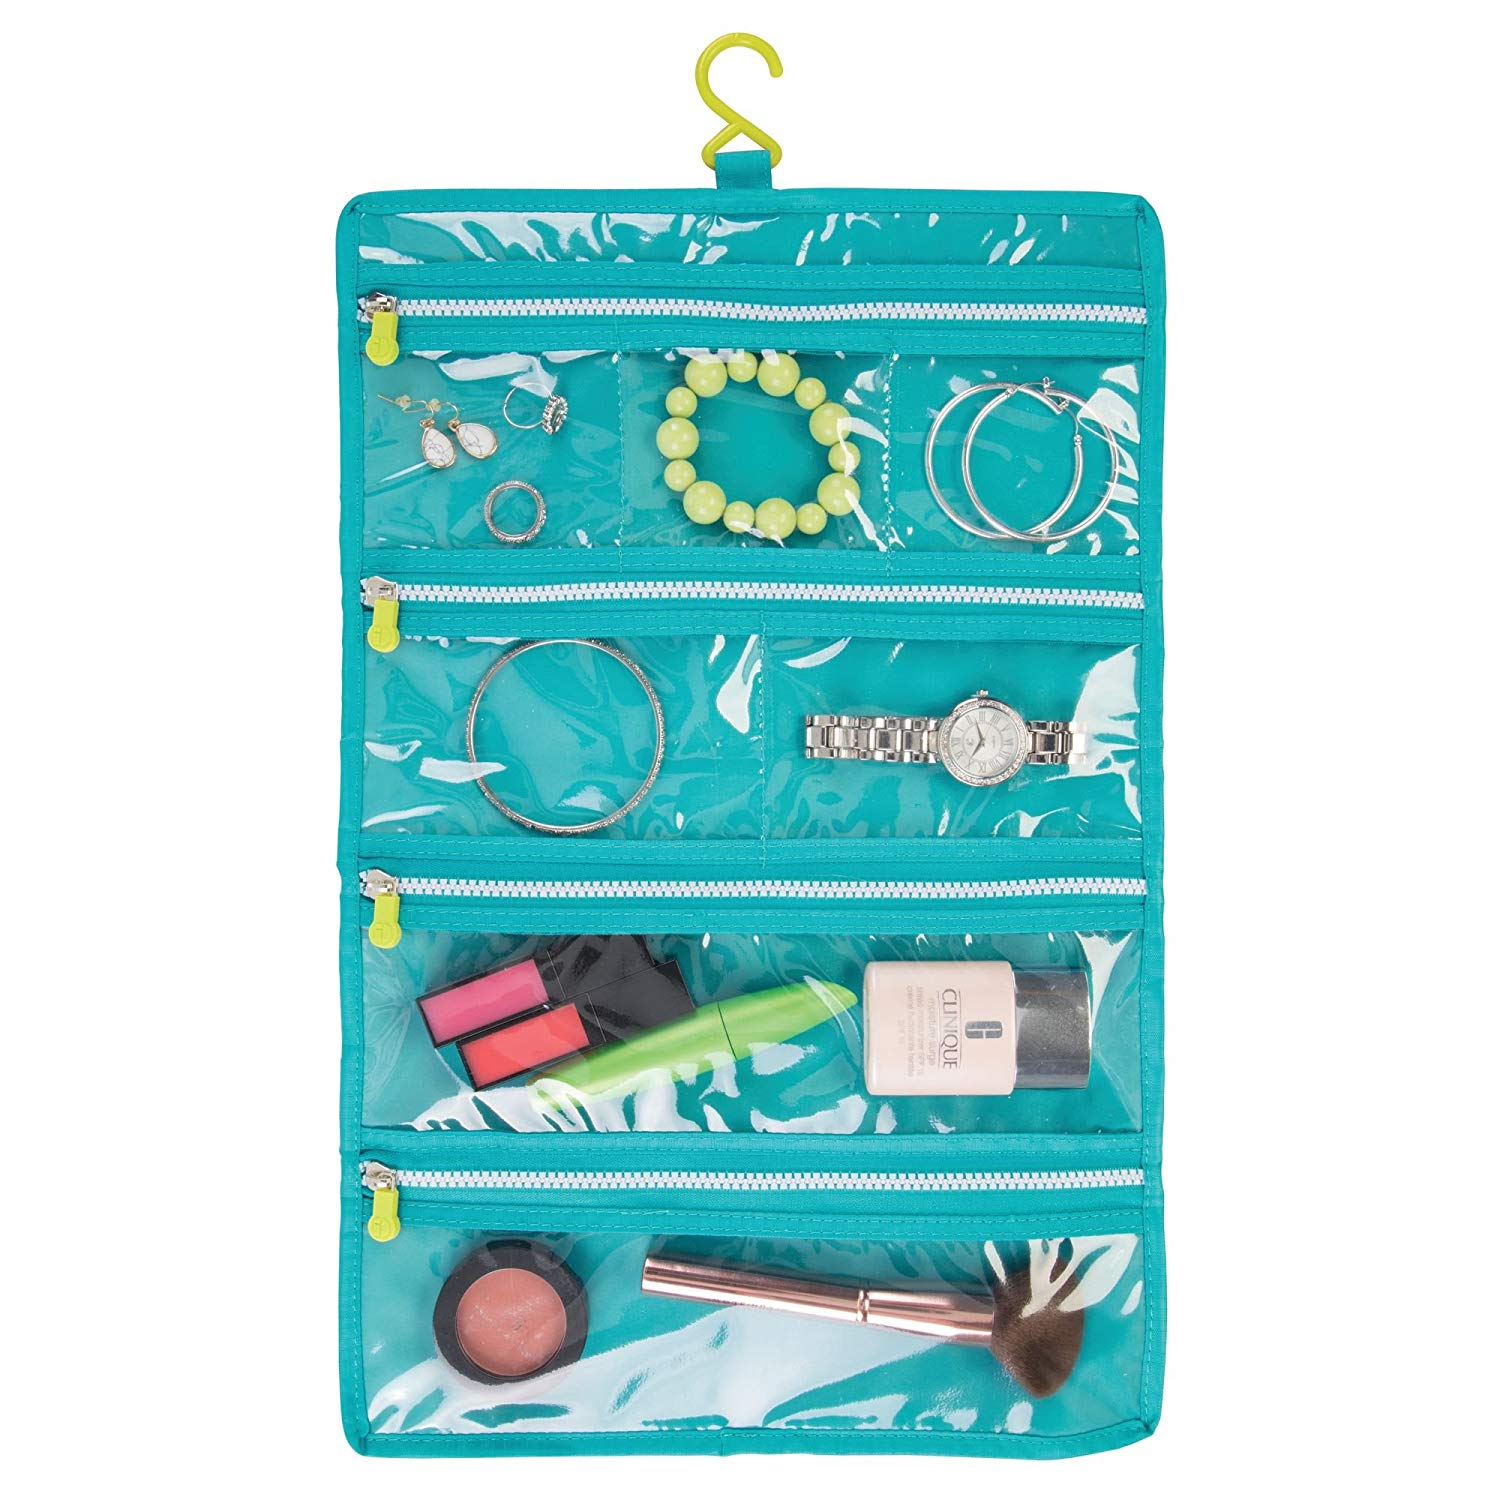 8afdce552 Get Quotations · mDesign Travel Roll Up Makeup Jewelry Organizer Bag:  Elastic Closure, Hanging Hook and 7